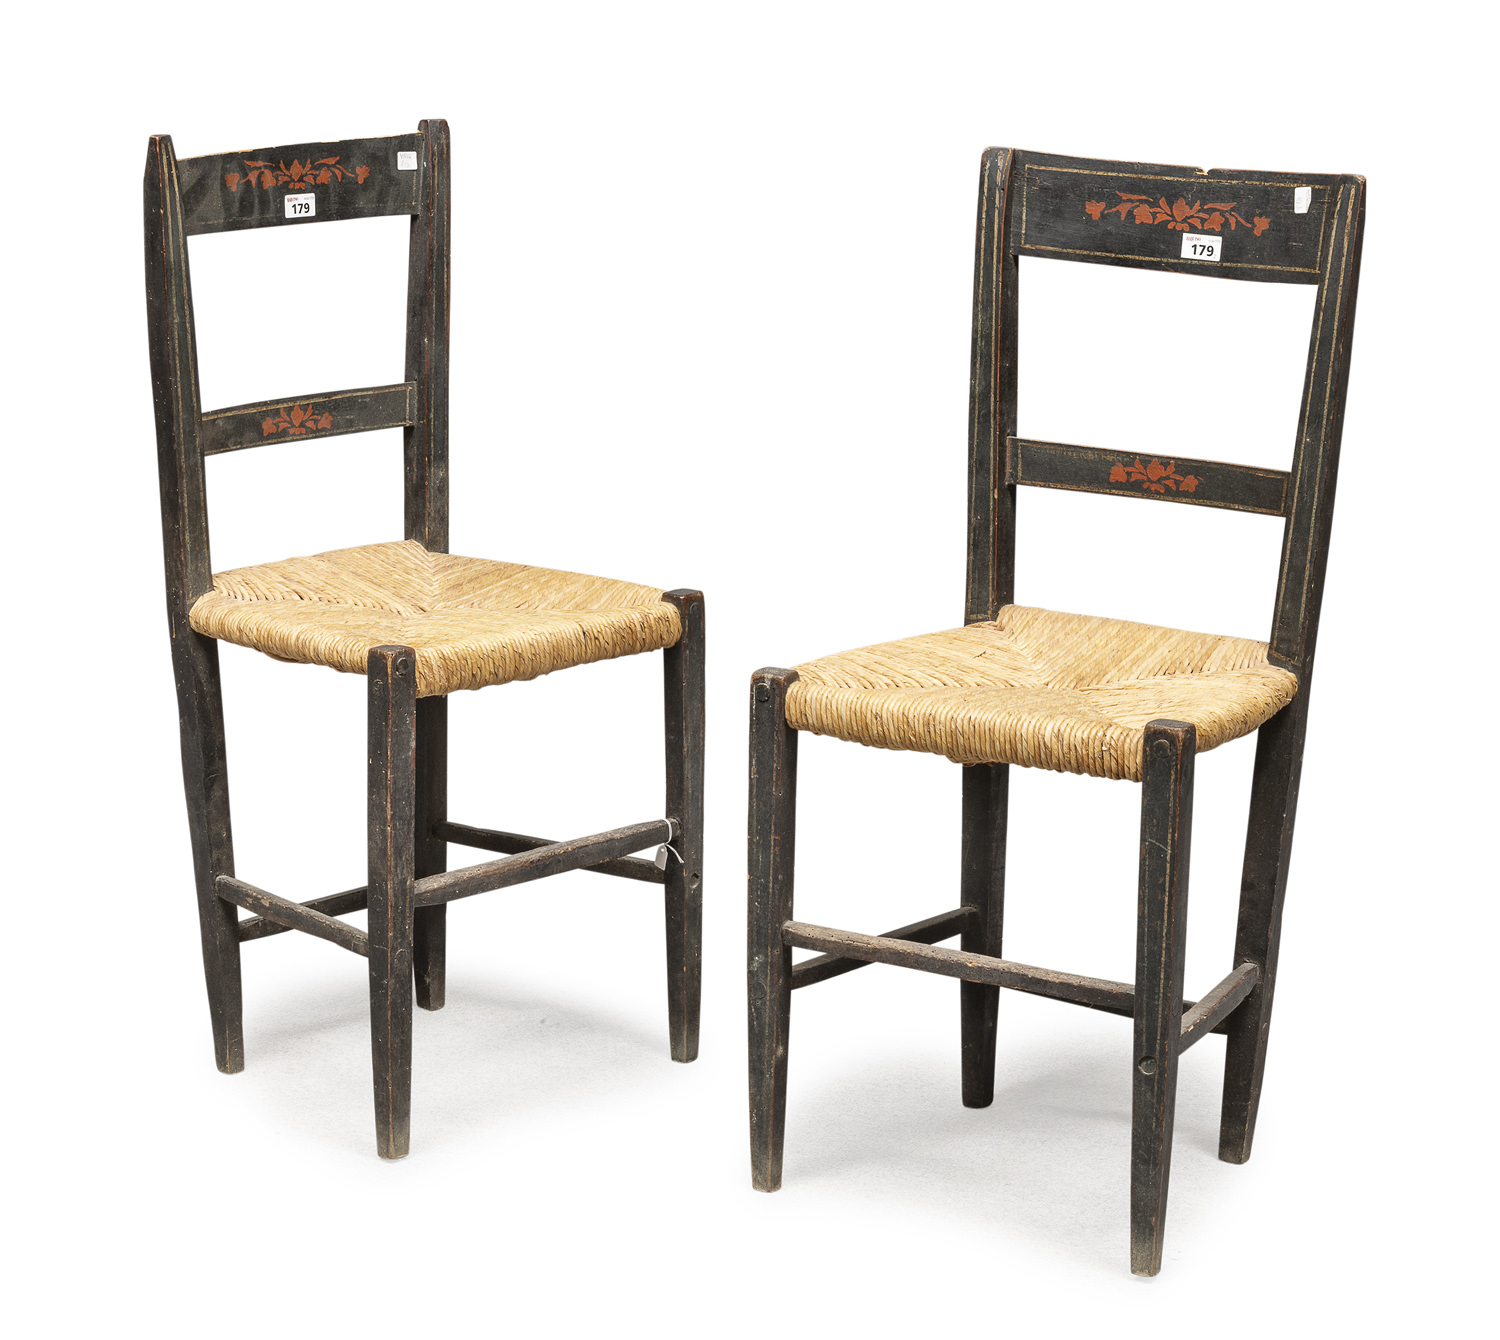 PAIR OF LACQUERED WOODEN CHAIRS TUSCANY EARLY 19TH CENTURY